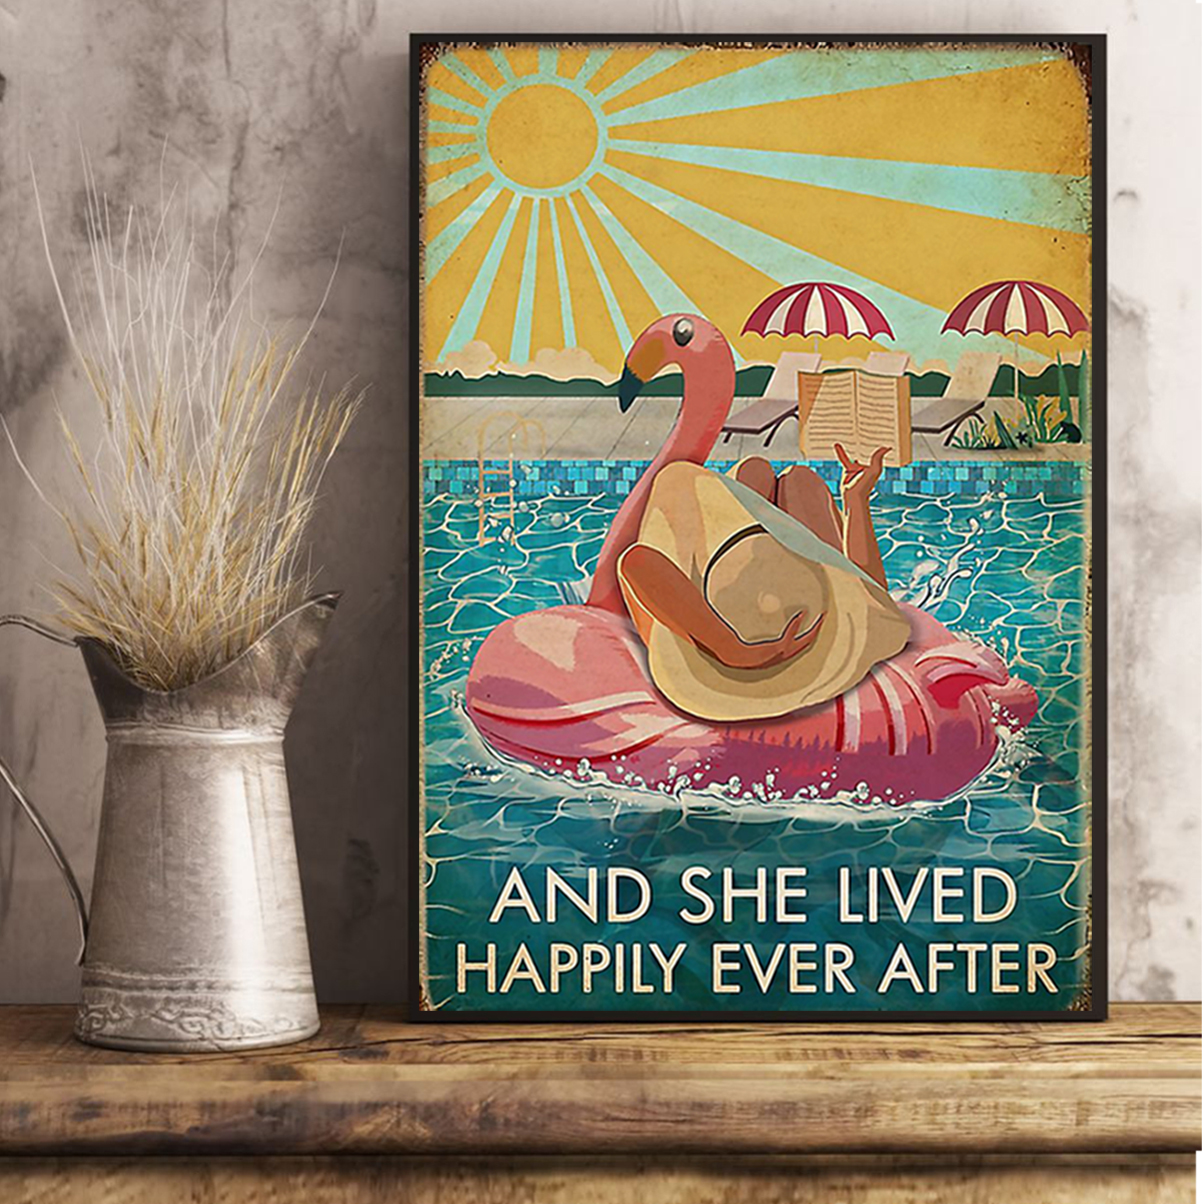 Flamingo and she lived happily ever after book poster A3